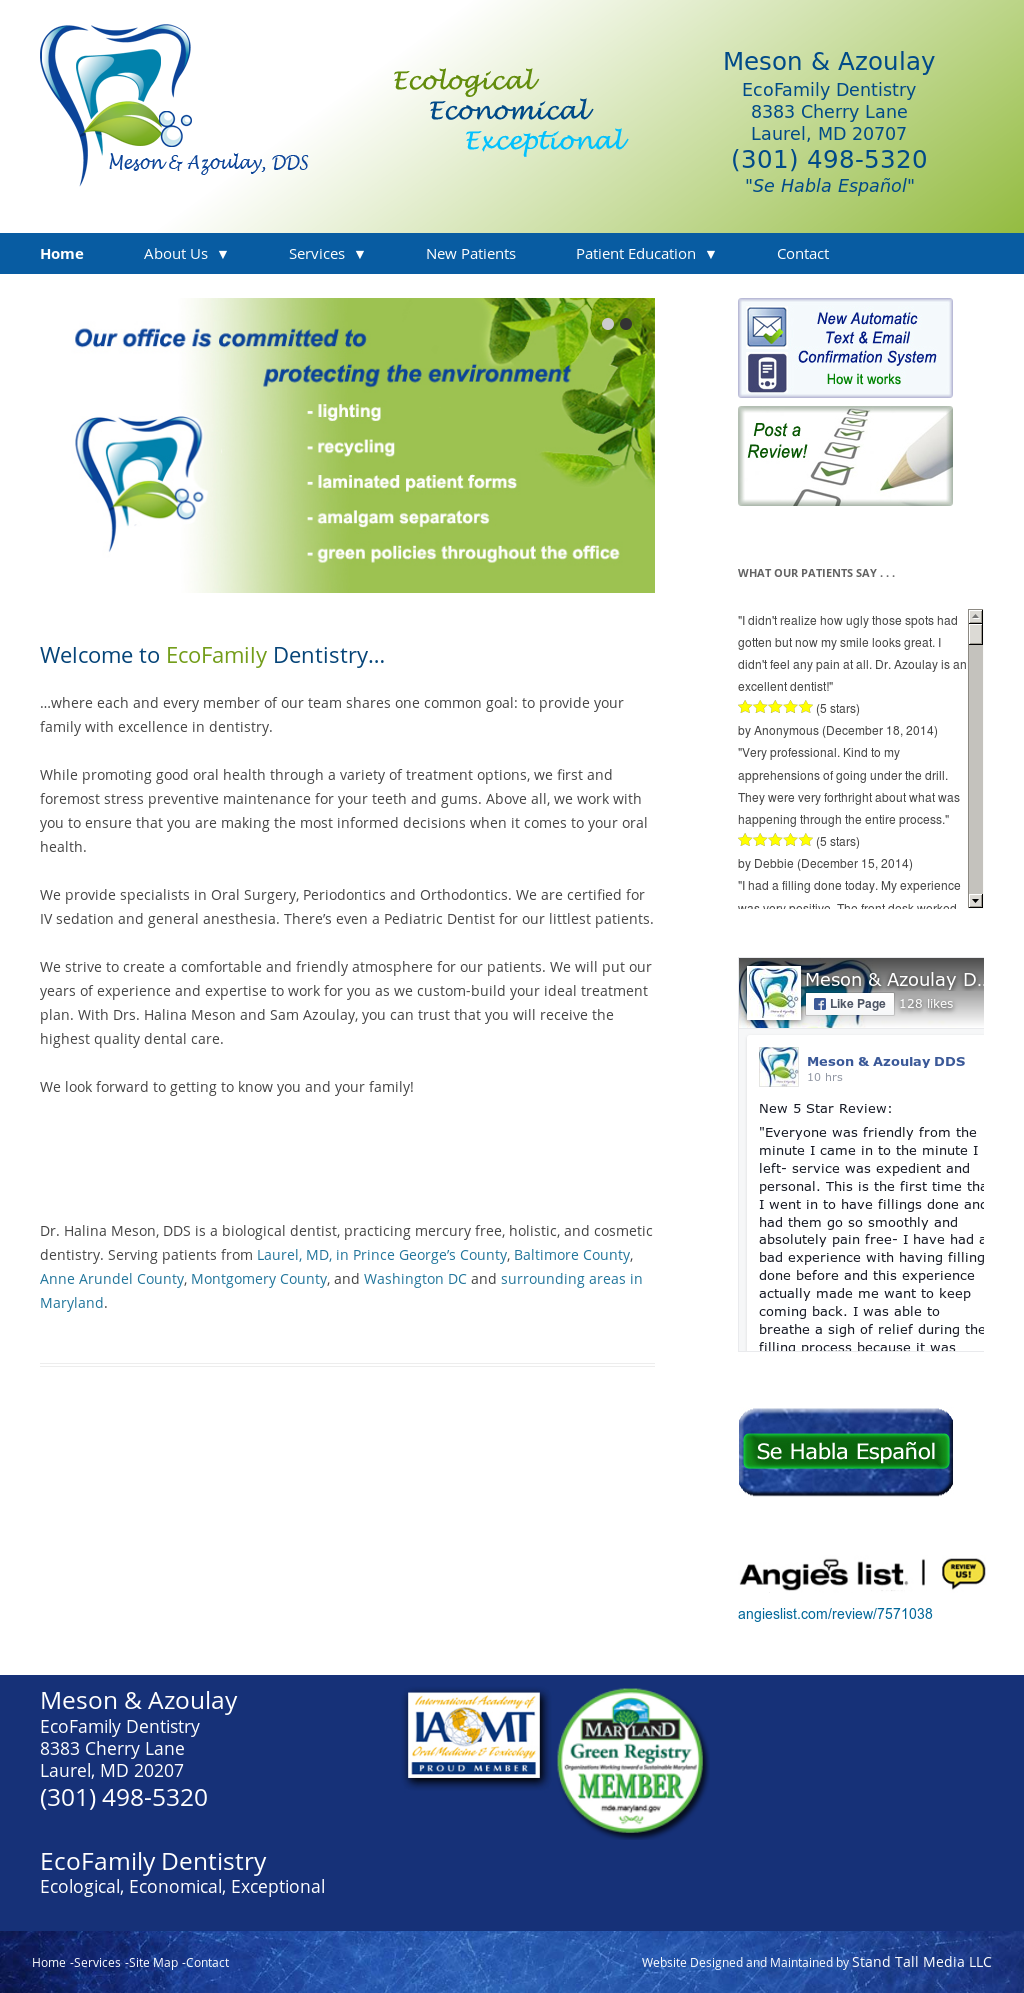 Meson & Azoulay Dds Competitors, Revenue and Employees